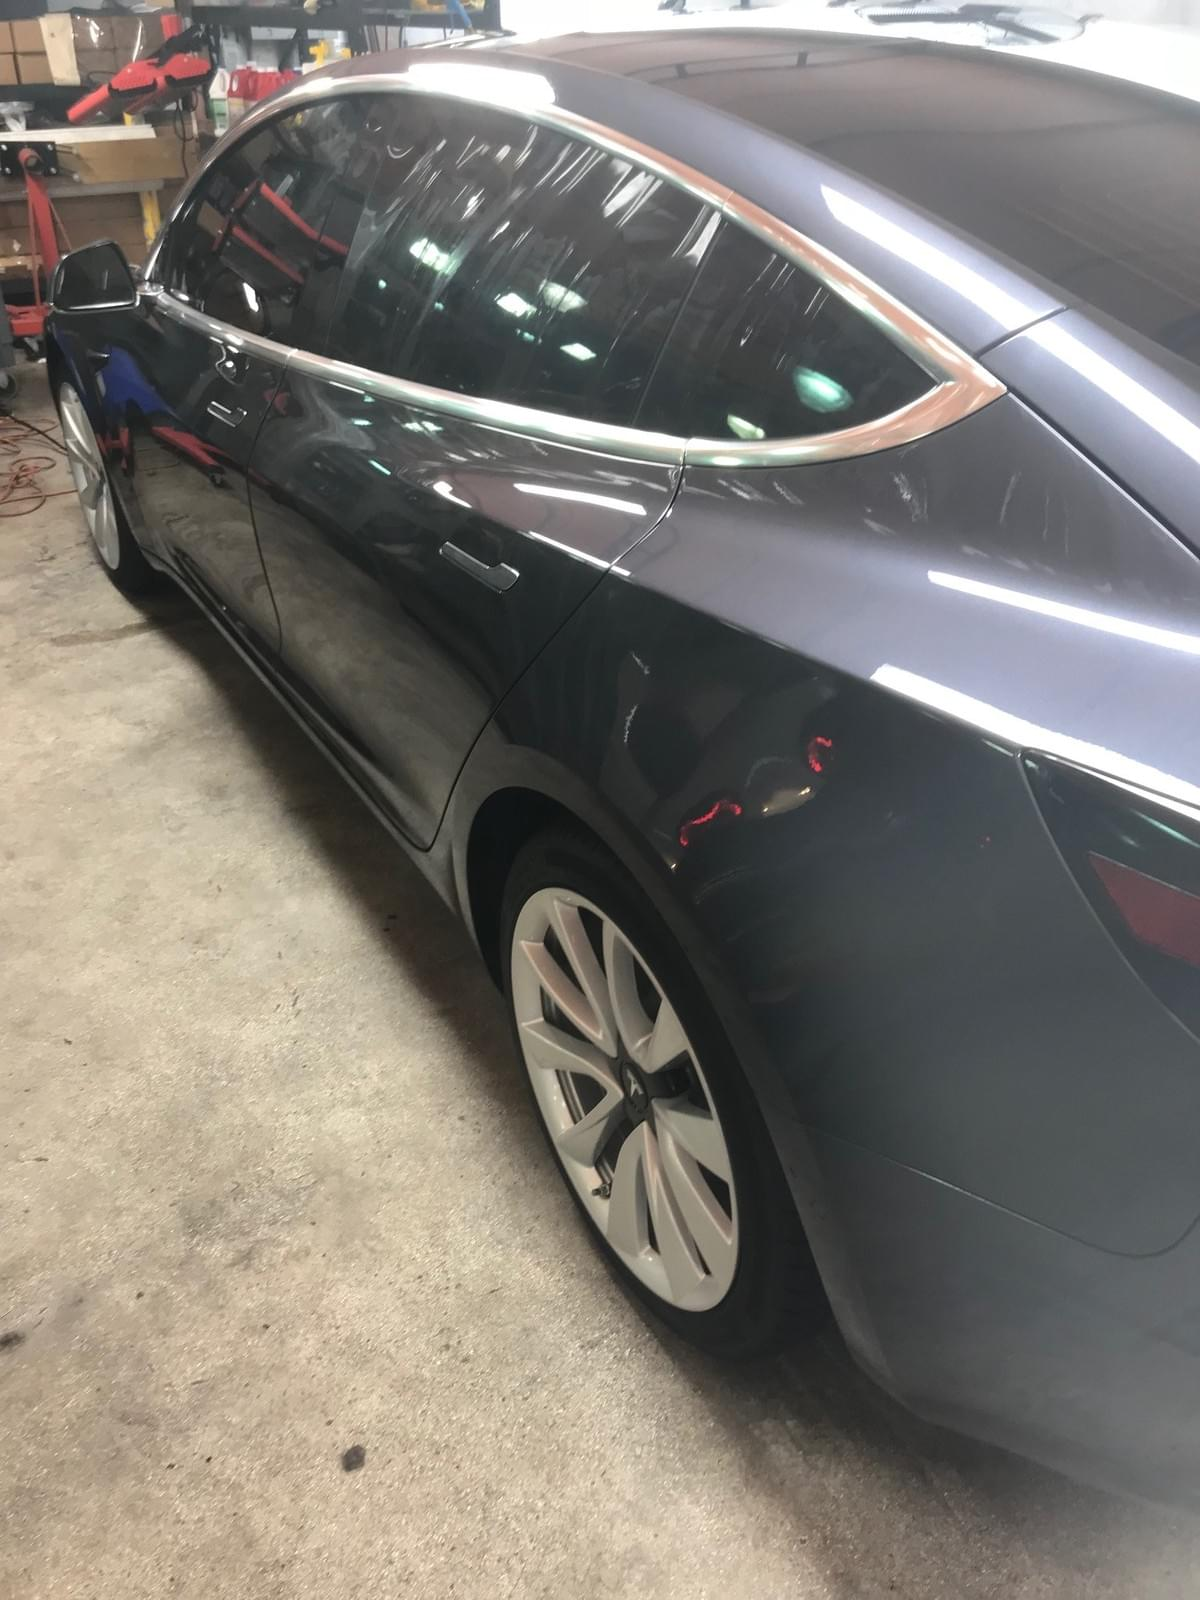 Tesla model 3 window tinting, Tesla model 3 glass tinting, Tesla model 3 chrome delete, Paint Tesla wheels